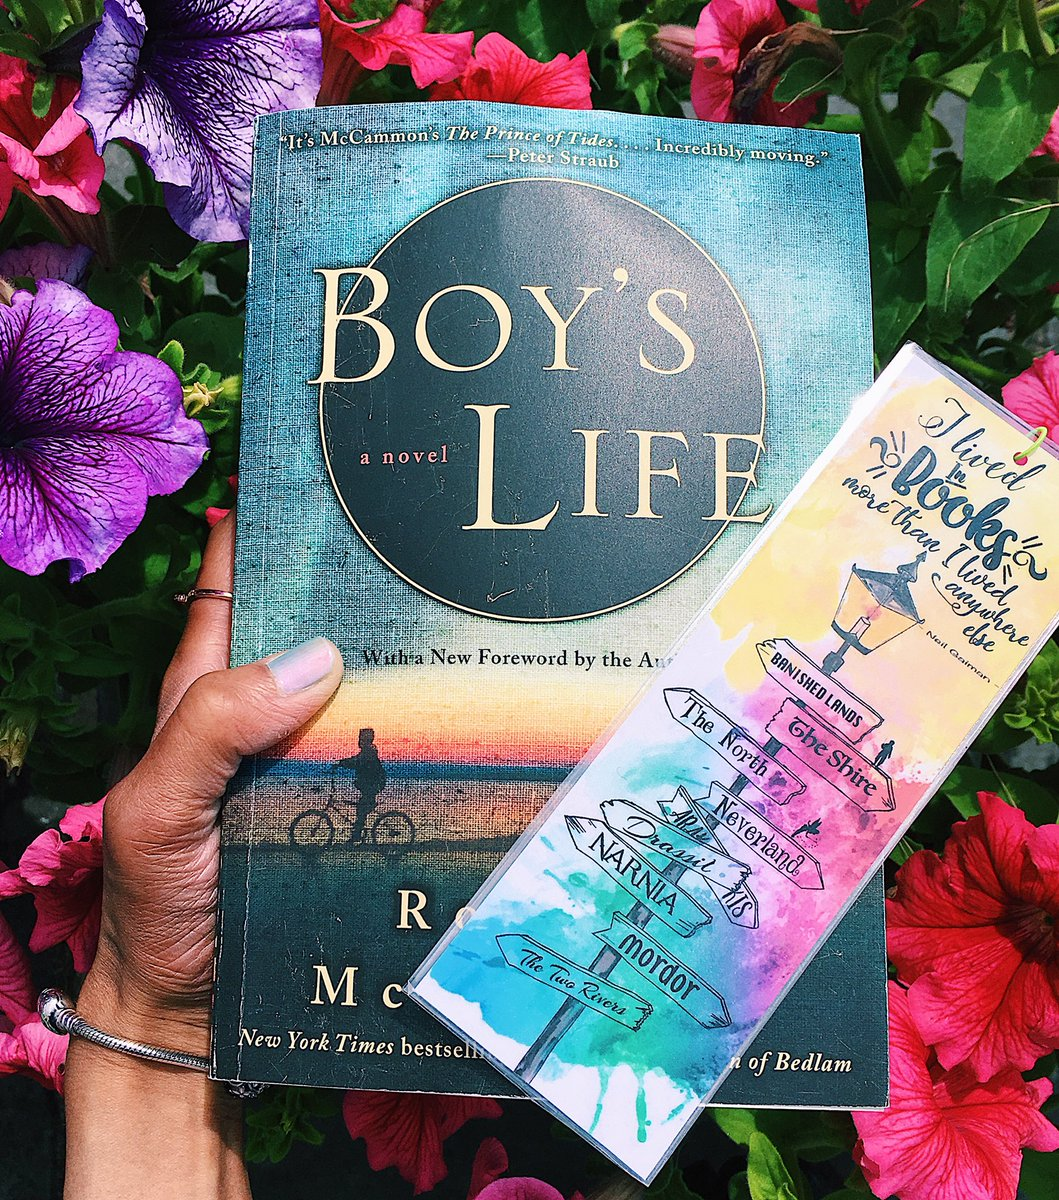 boy s life by robert mccammon summary An alabama boy's innocence is shaken by murder and madness in the 1960s south in this novel by the new york times-bestselling author of swan song it's 1964 in idyllic zephyr, alabama.